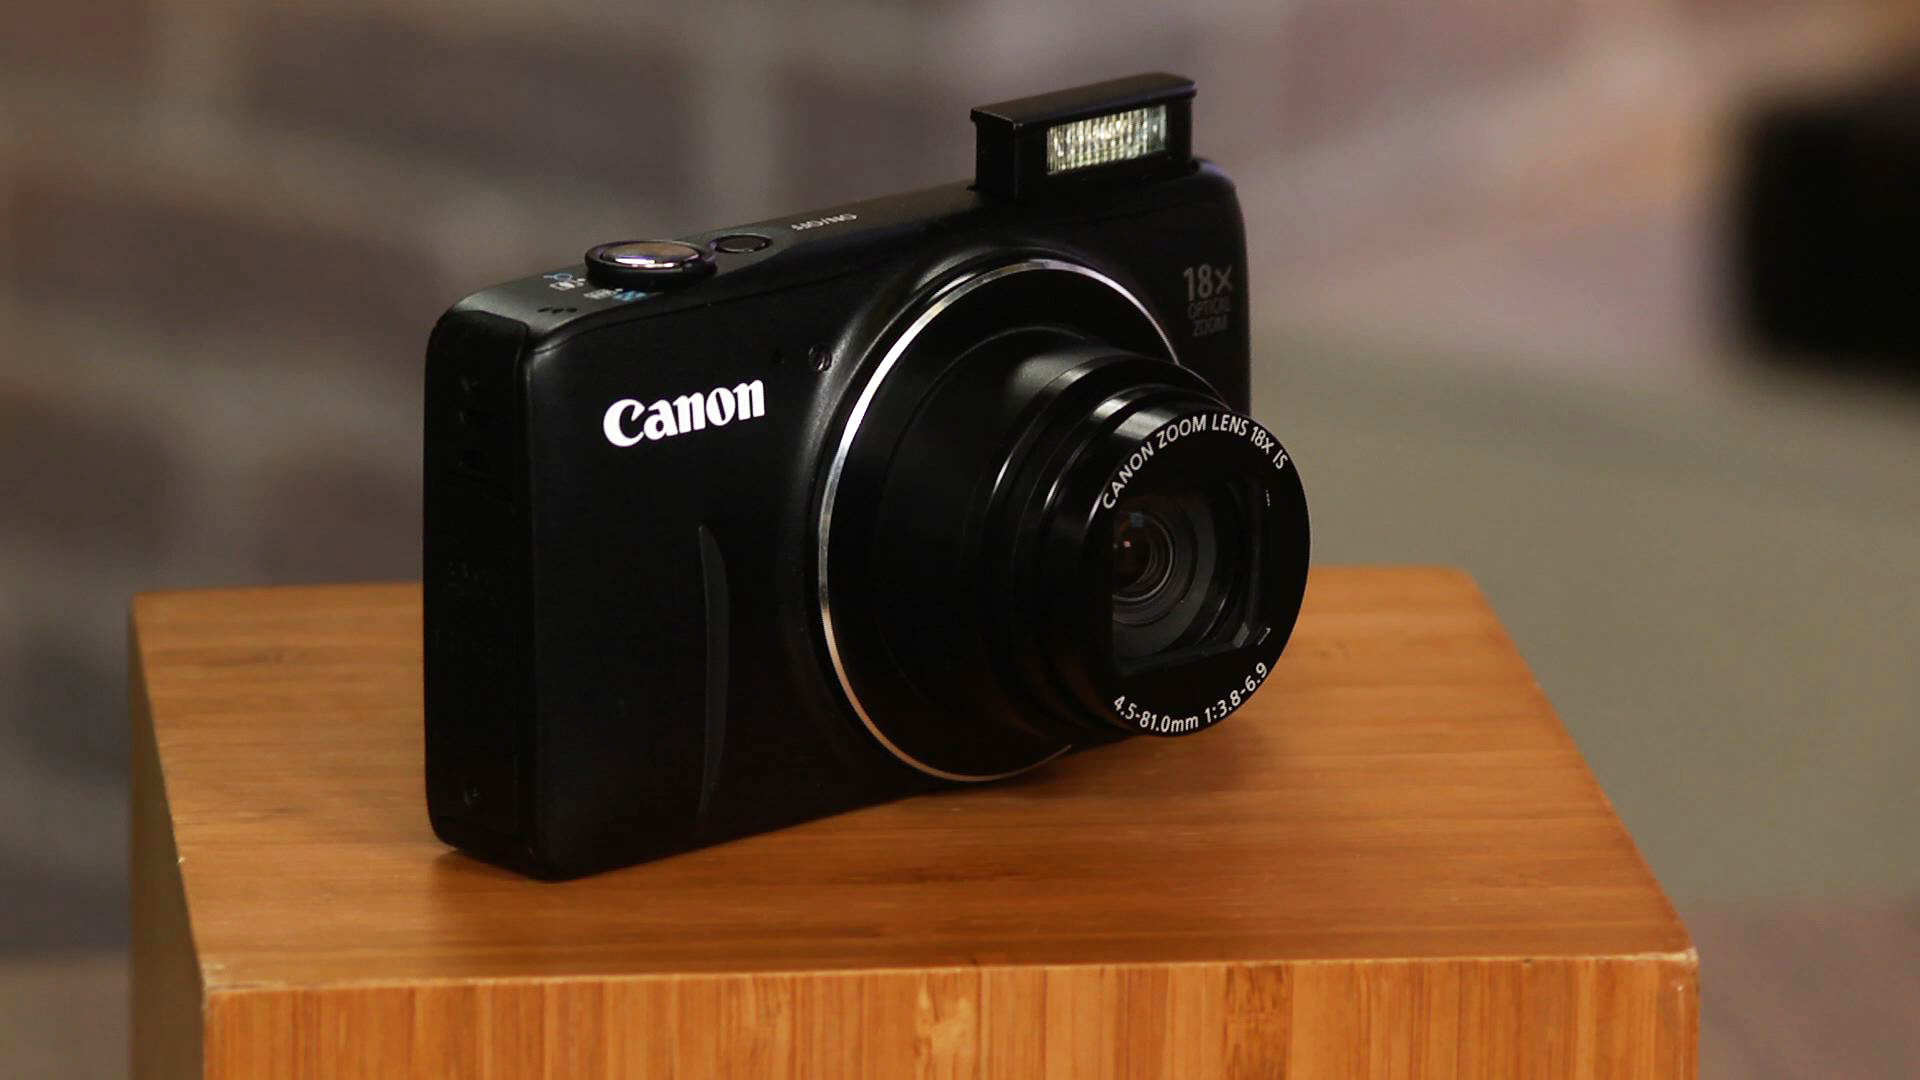 Video: Canon's PowerShot SX600 HS a very good 18x Wi-Fi-enabled point-and-shoot